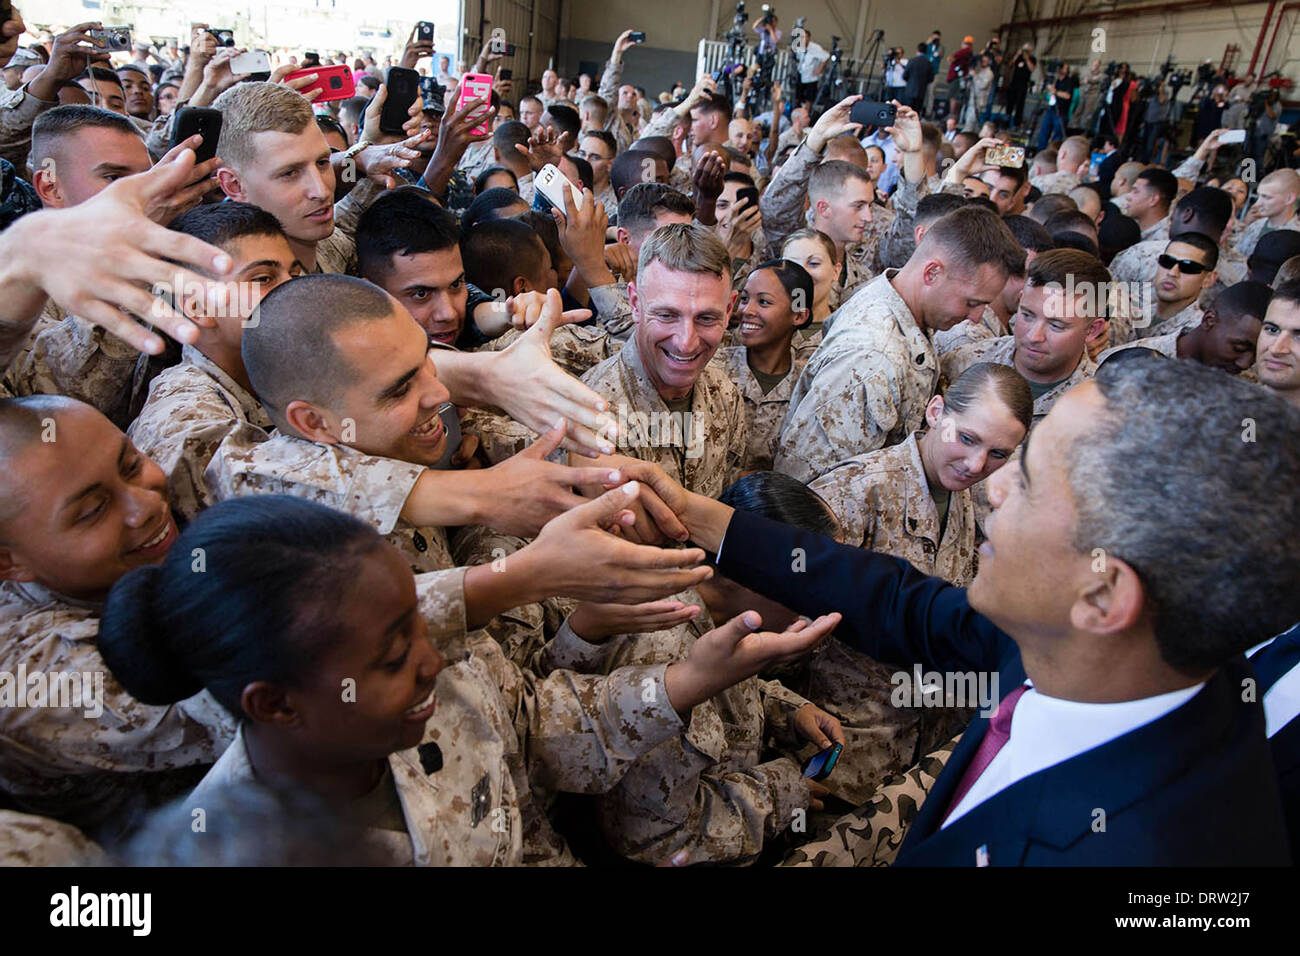 US President greets troops during a rally at Marine Corps Base Camp Pendleton August 7, 2013 in Camp Pendleton, CA. - Stock Image